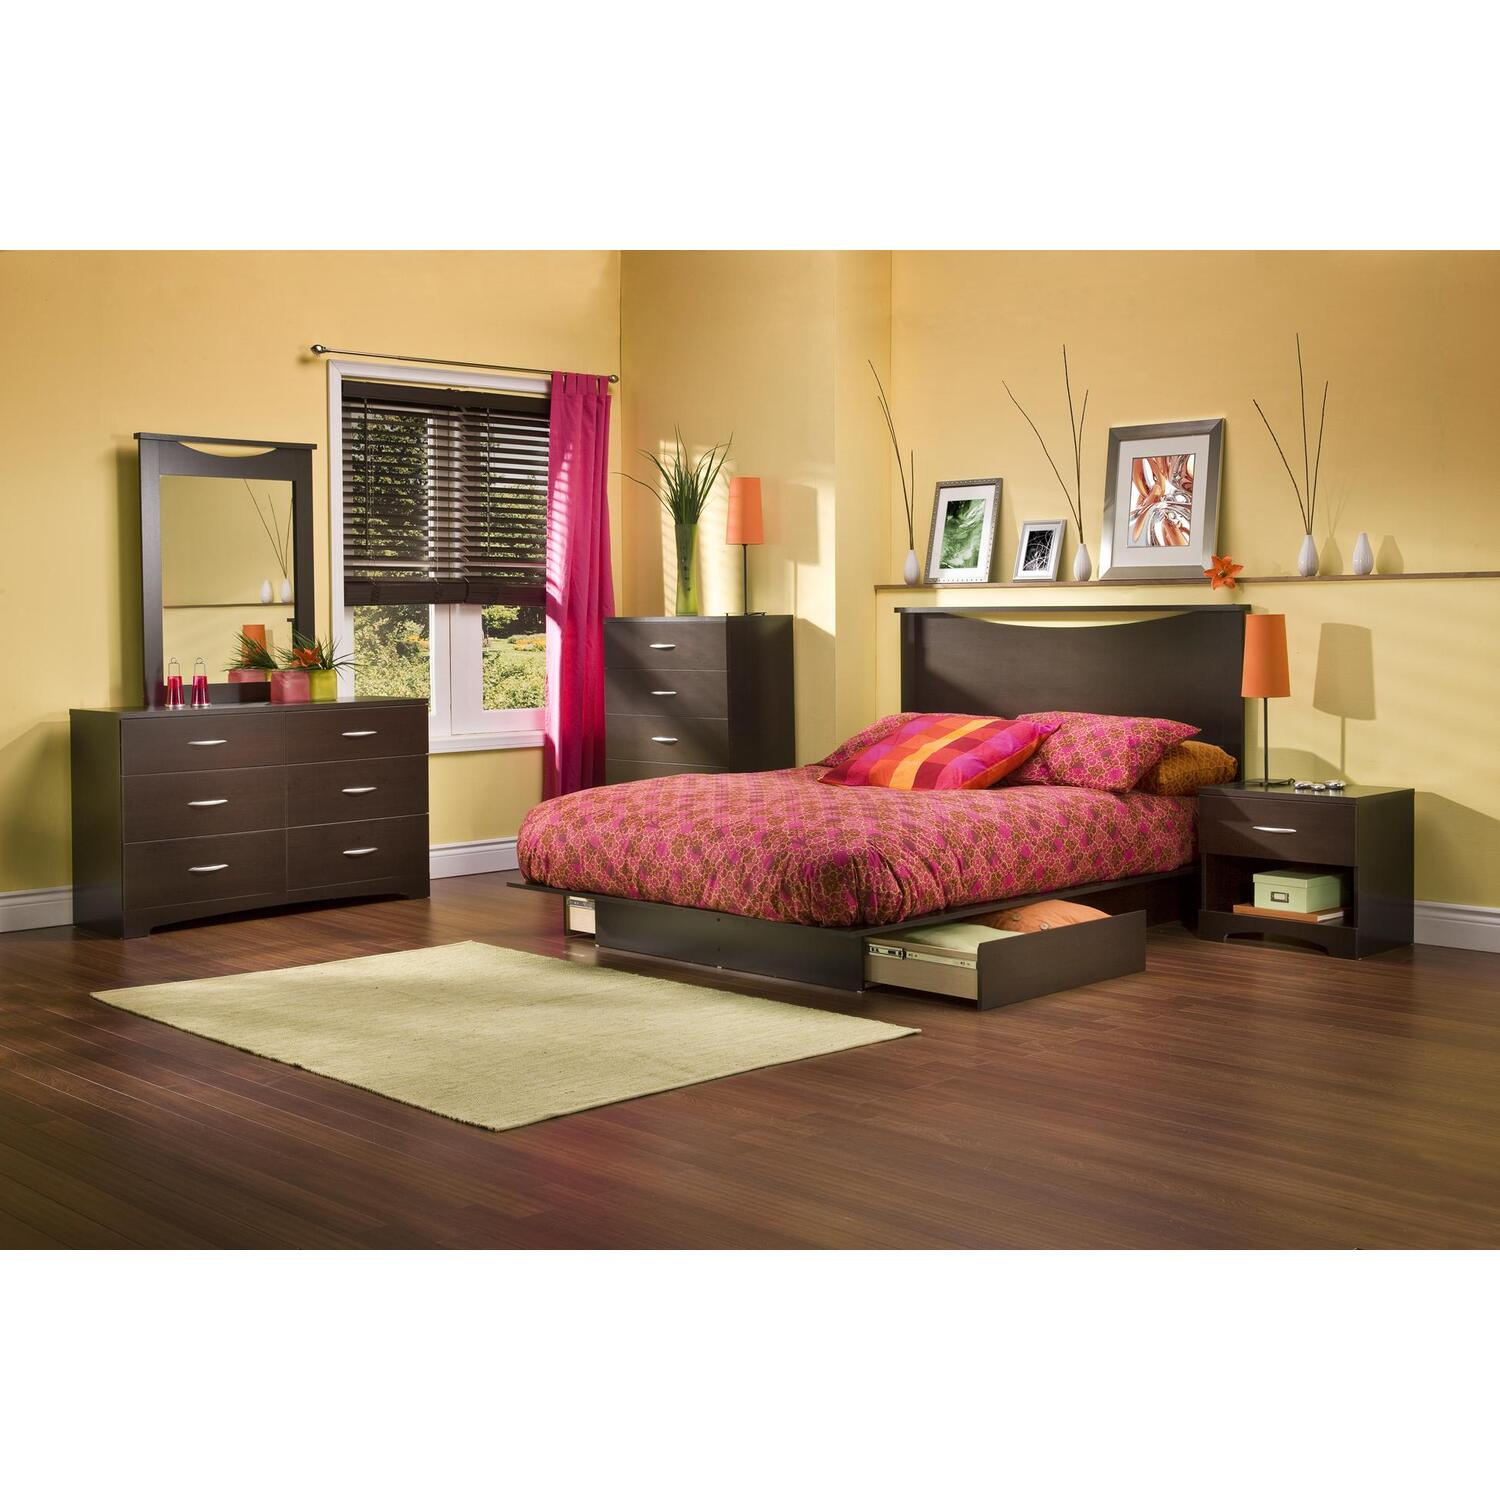 south shore back bay full queen platform 6 piece bedroom